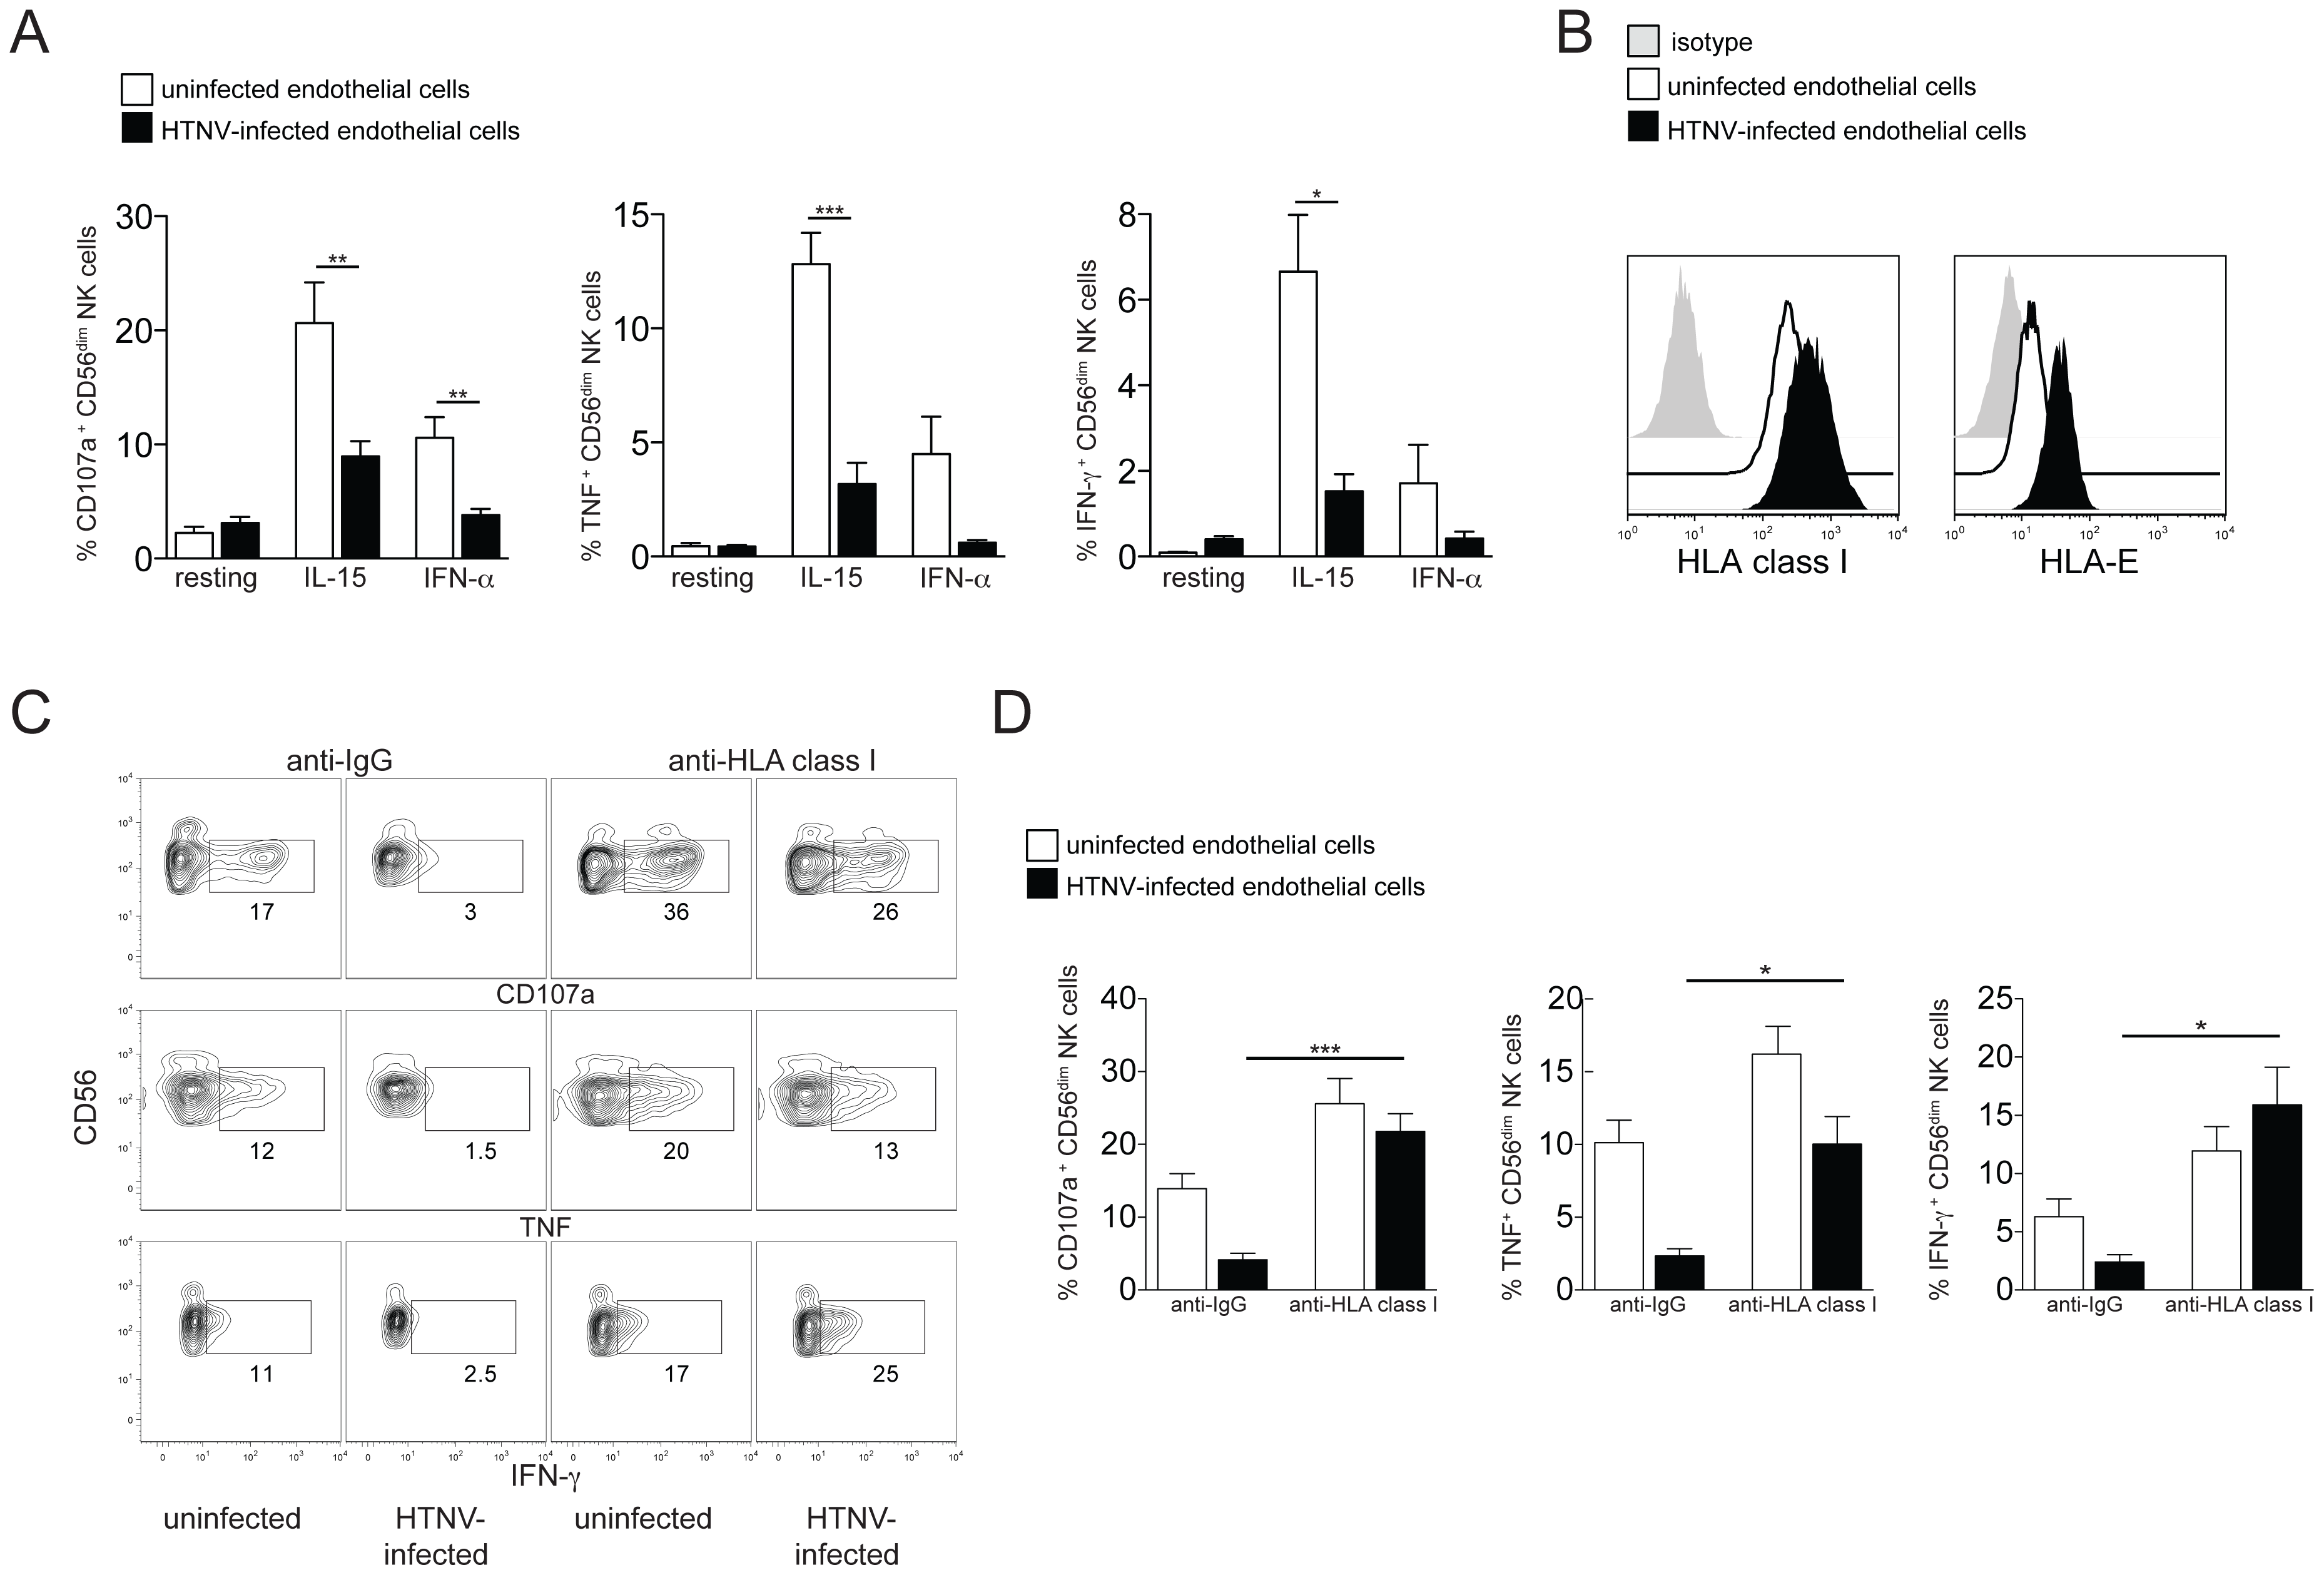 Increased HLA class I expression on hantavirus-infected cells inhibits NK cell effector functions.